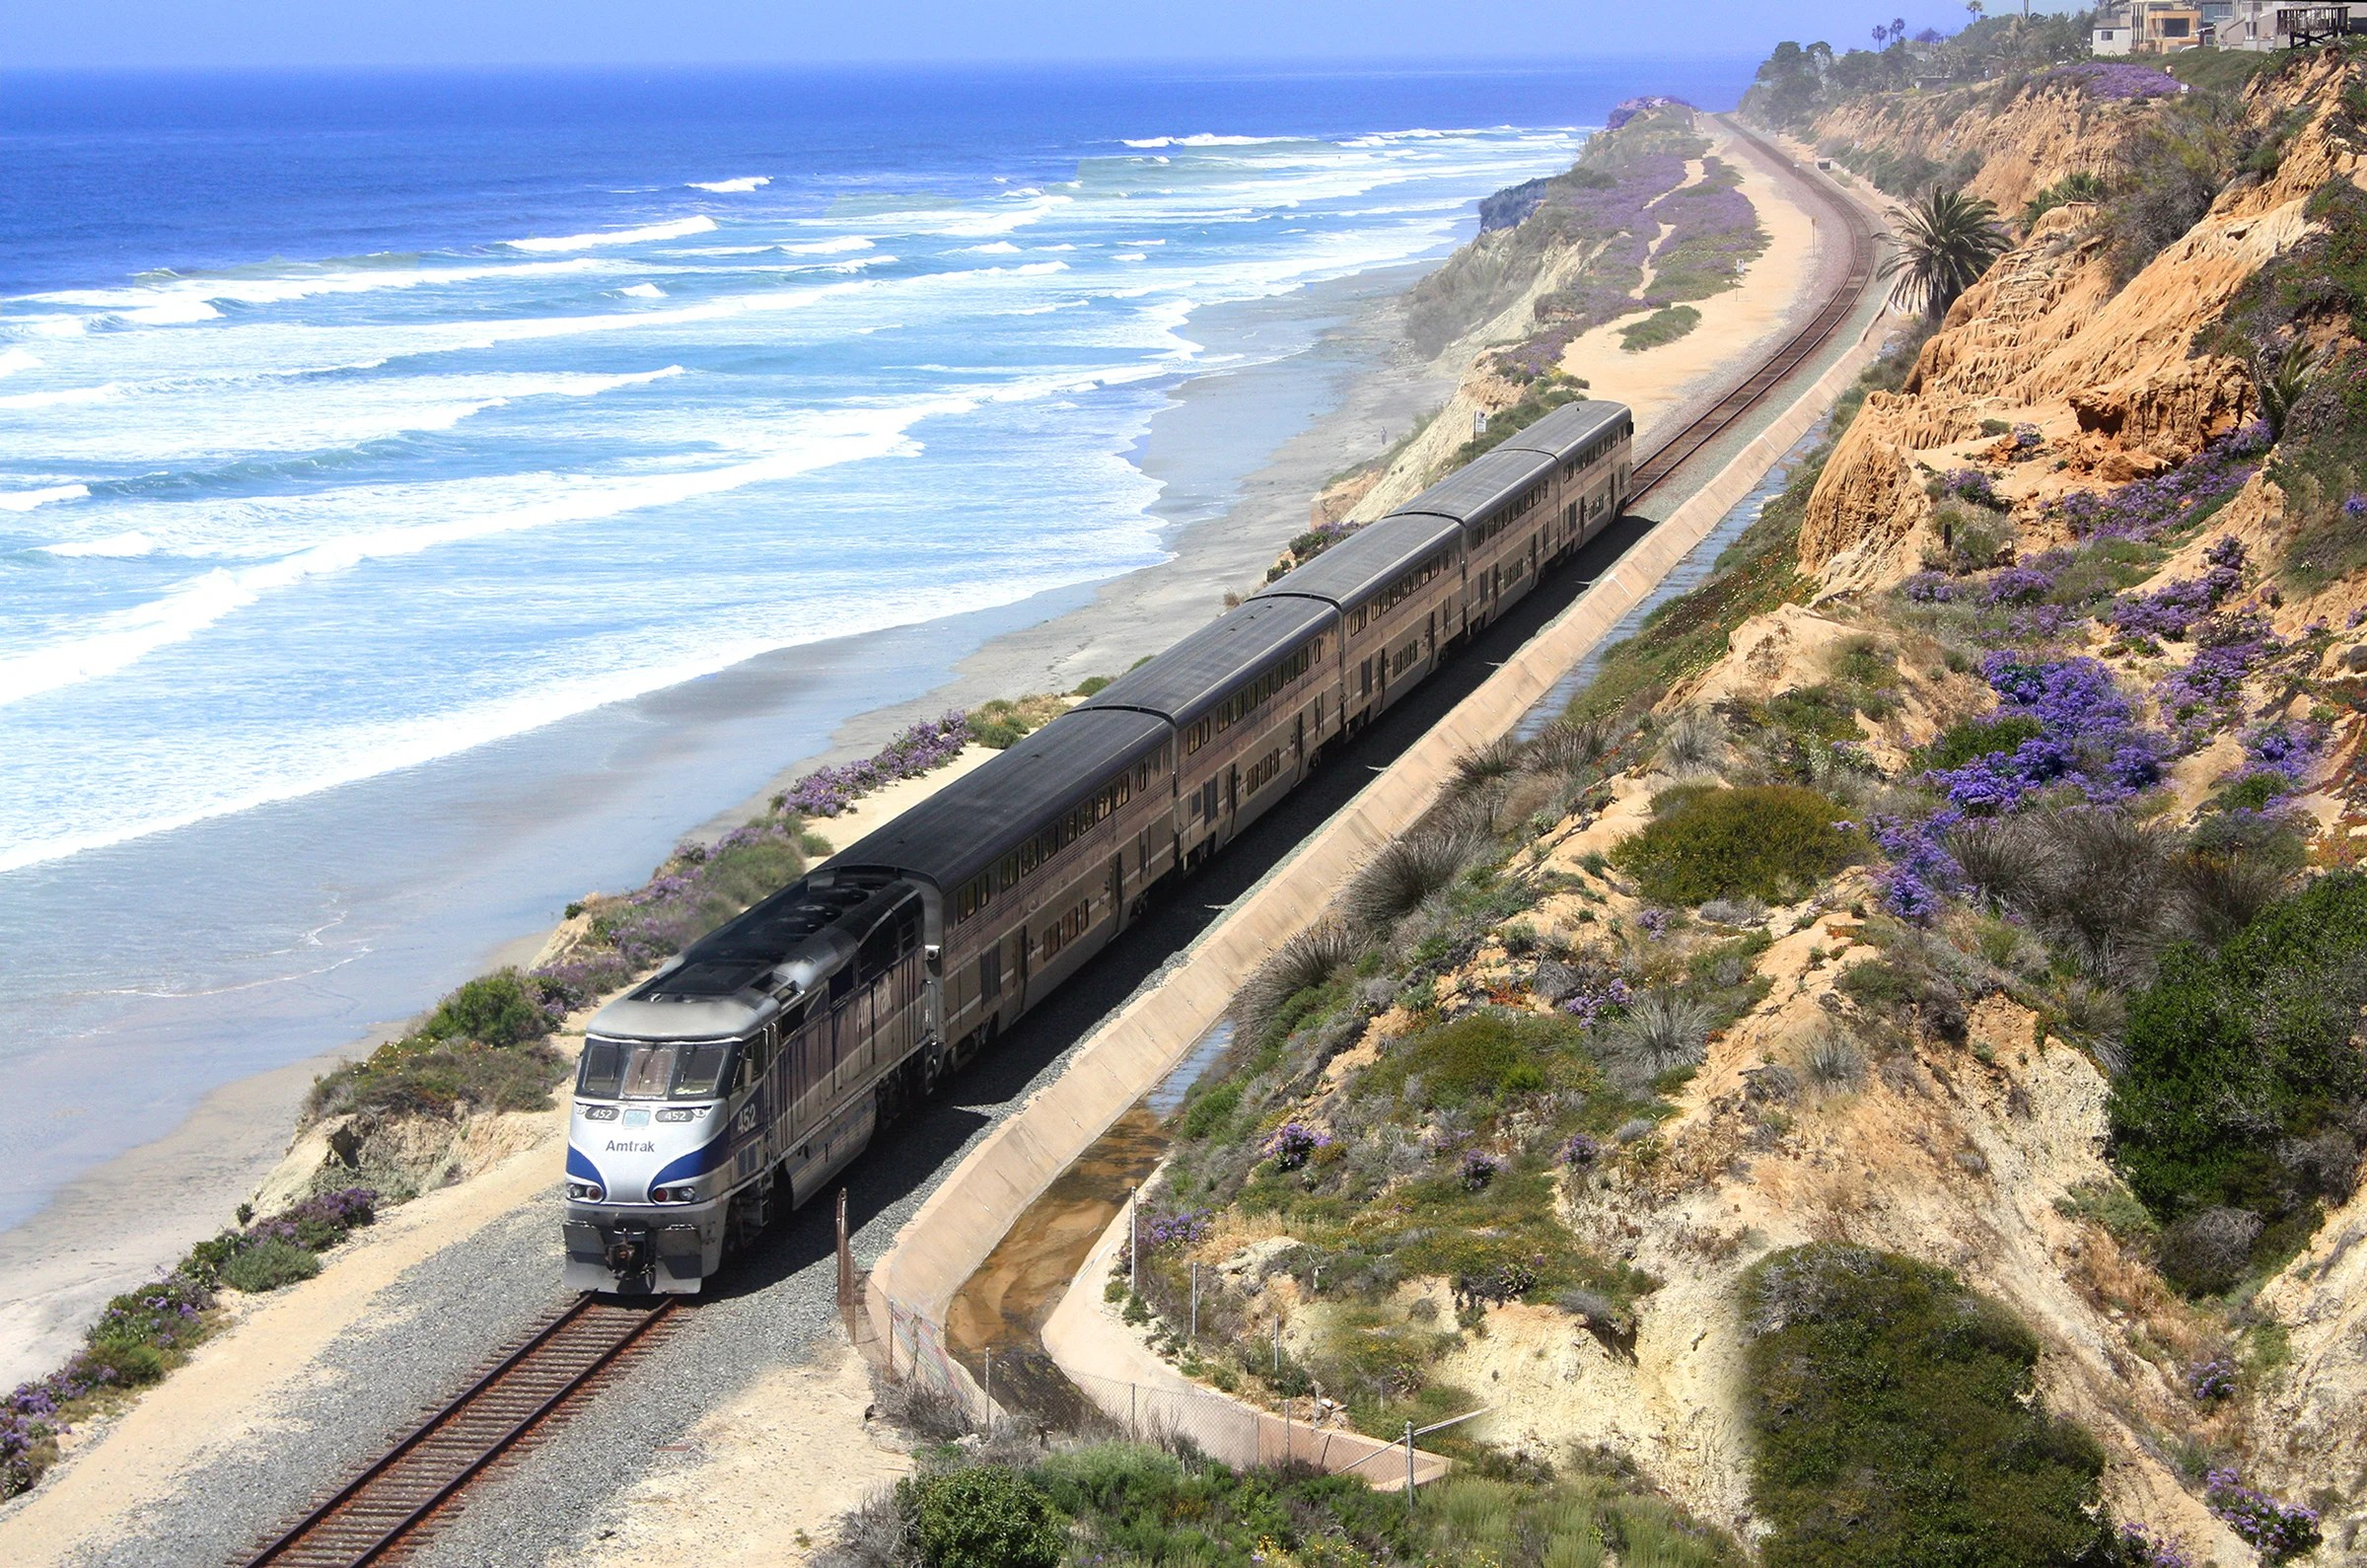 All aboard Amtrak's Pacific Surfliner: The best way from Los Angeles to San Diego